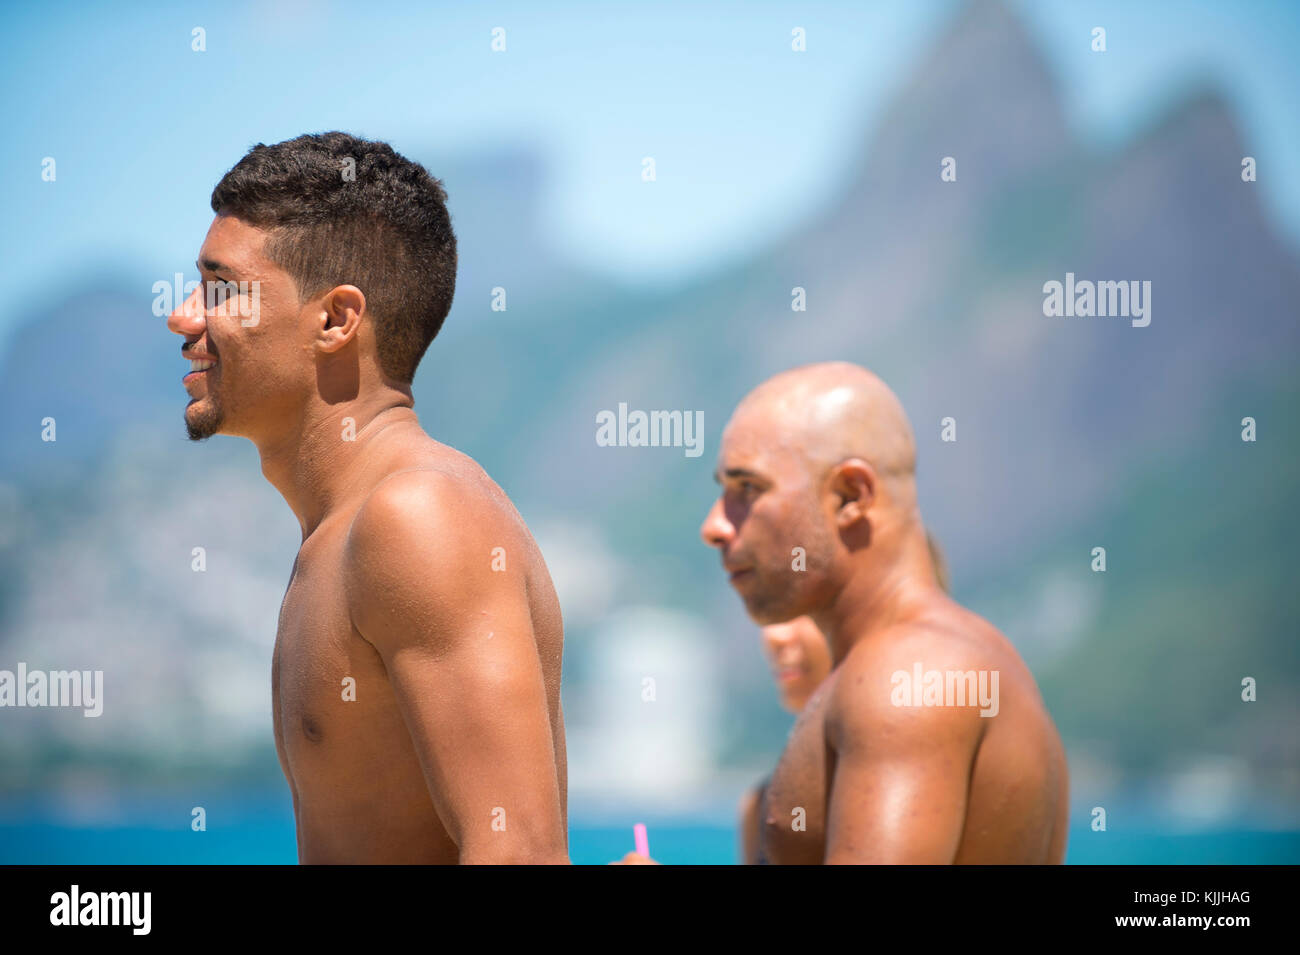 RIO DE JANEIRO - FEBRUARY 9, 2017: Brazilian surfers stand on the beach at Arpoador, the popular surf spot, against - Stock Image